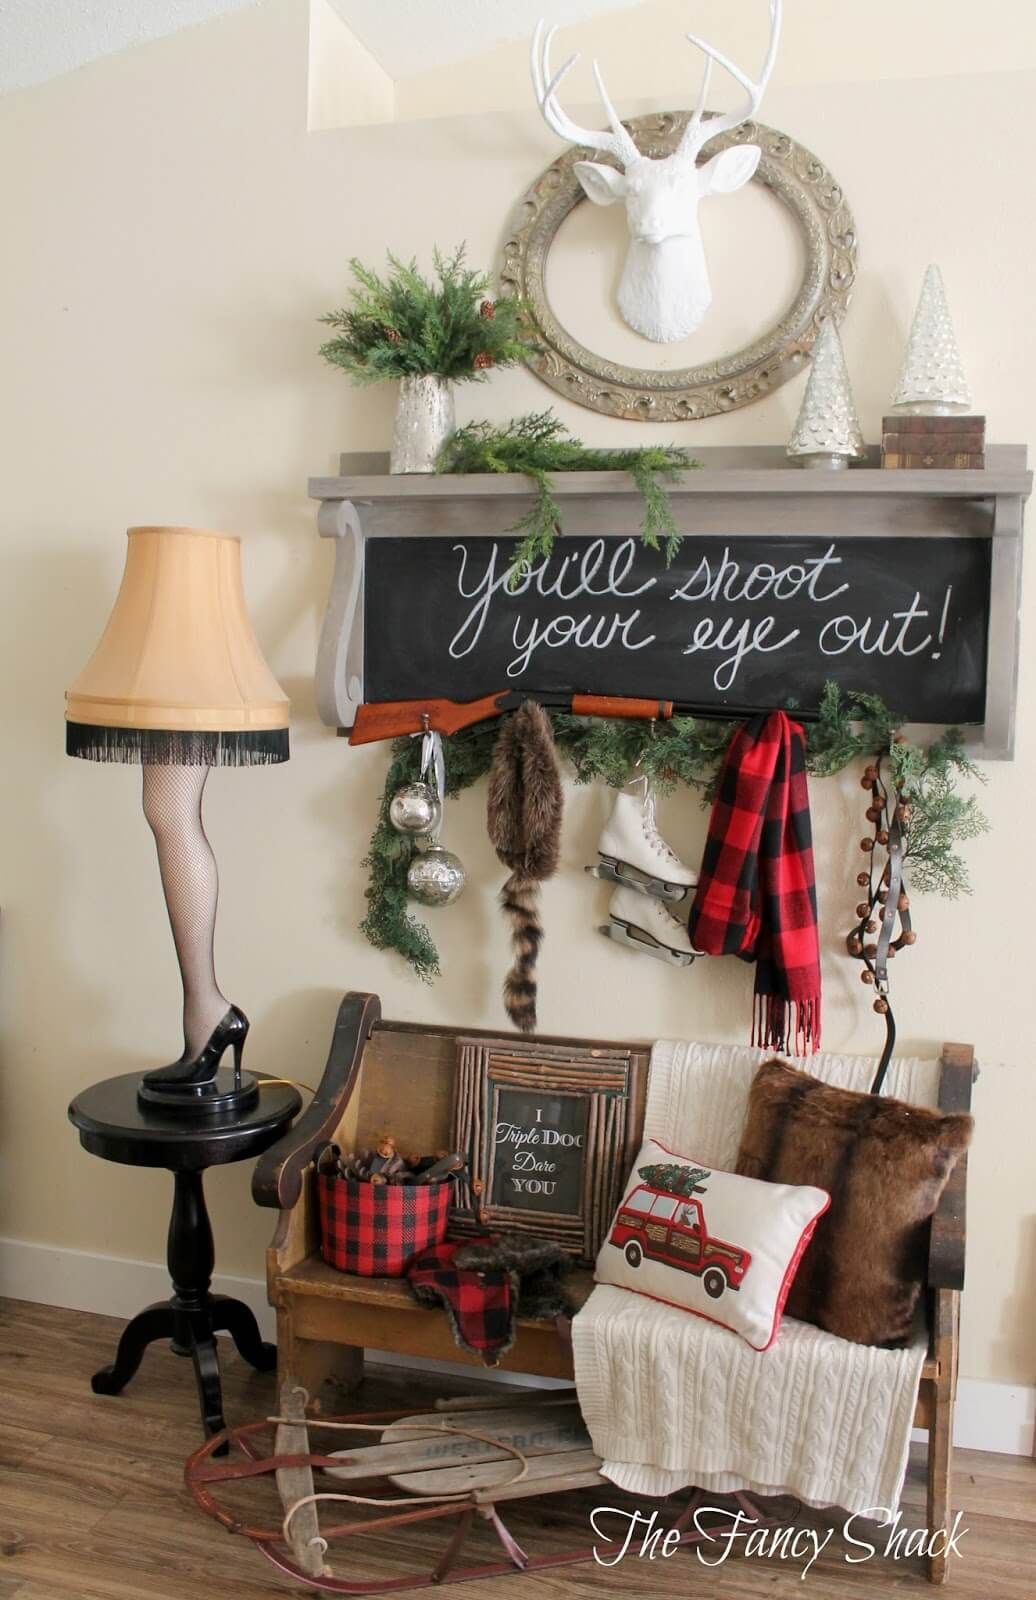 35 Festive Christmas Wall Decor Ideas That Will Instantly Get You Into The Holiday Spirit